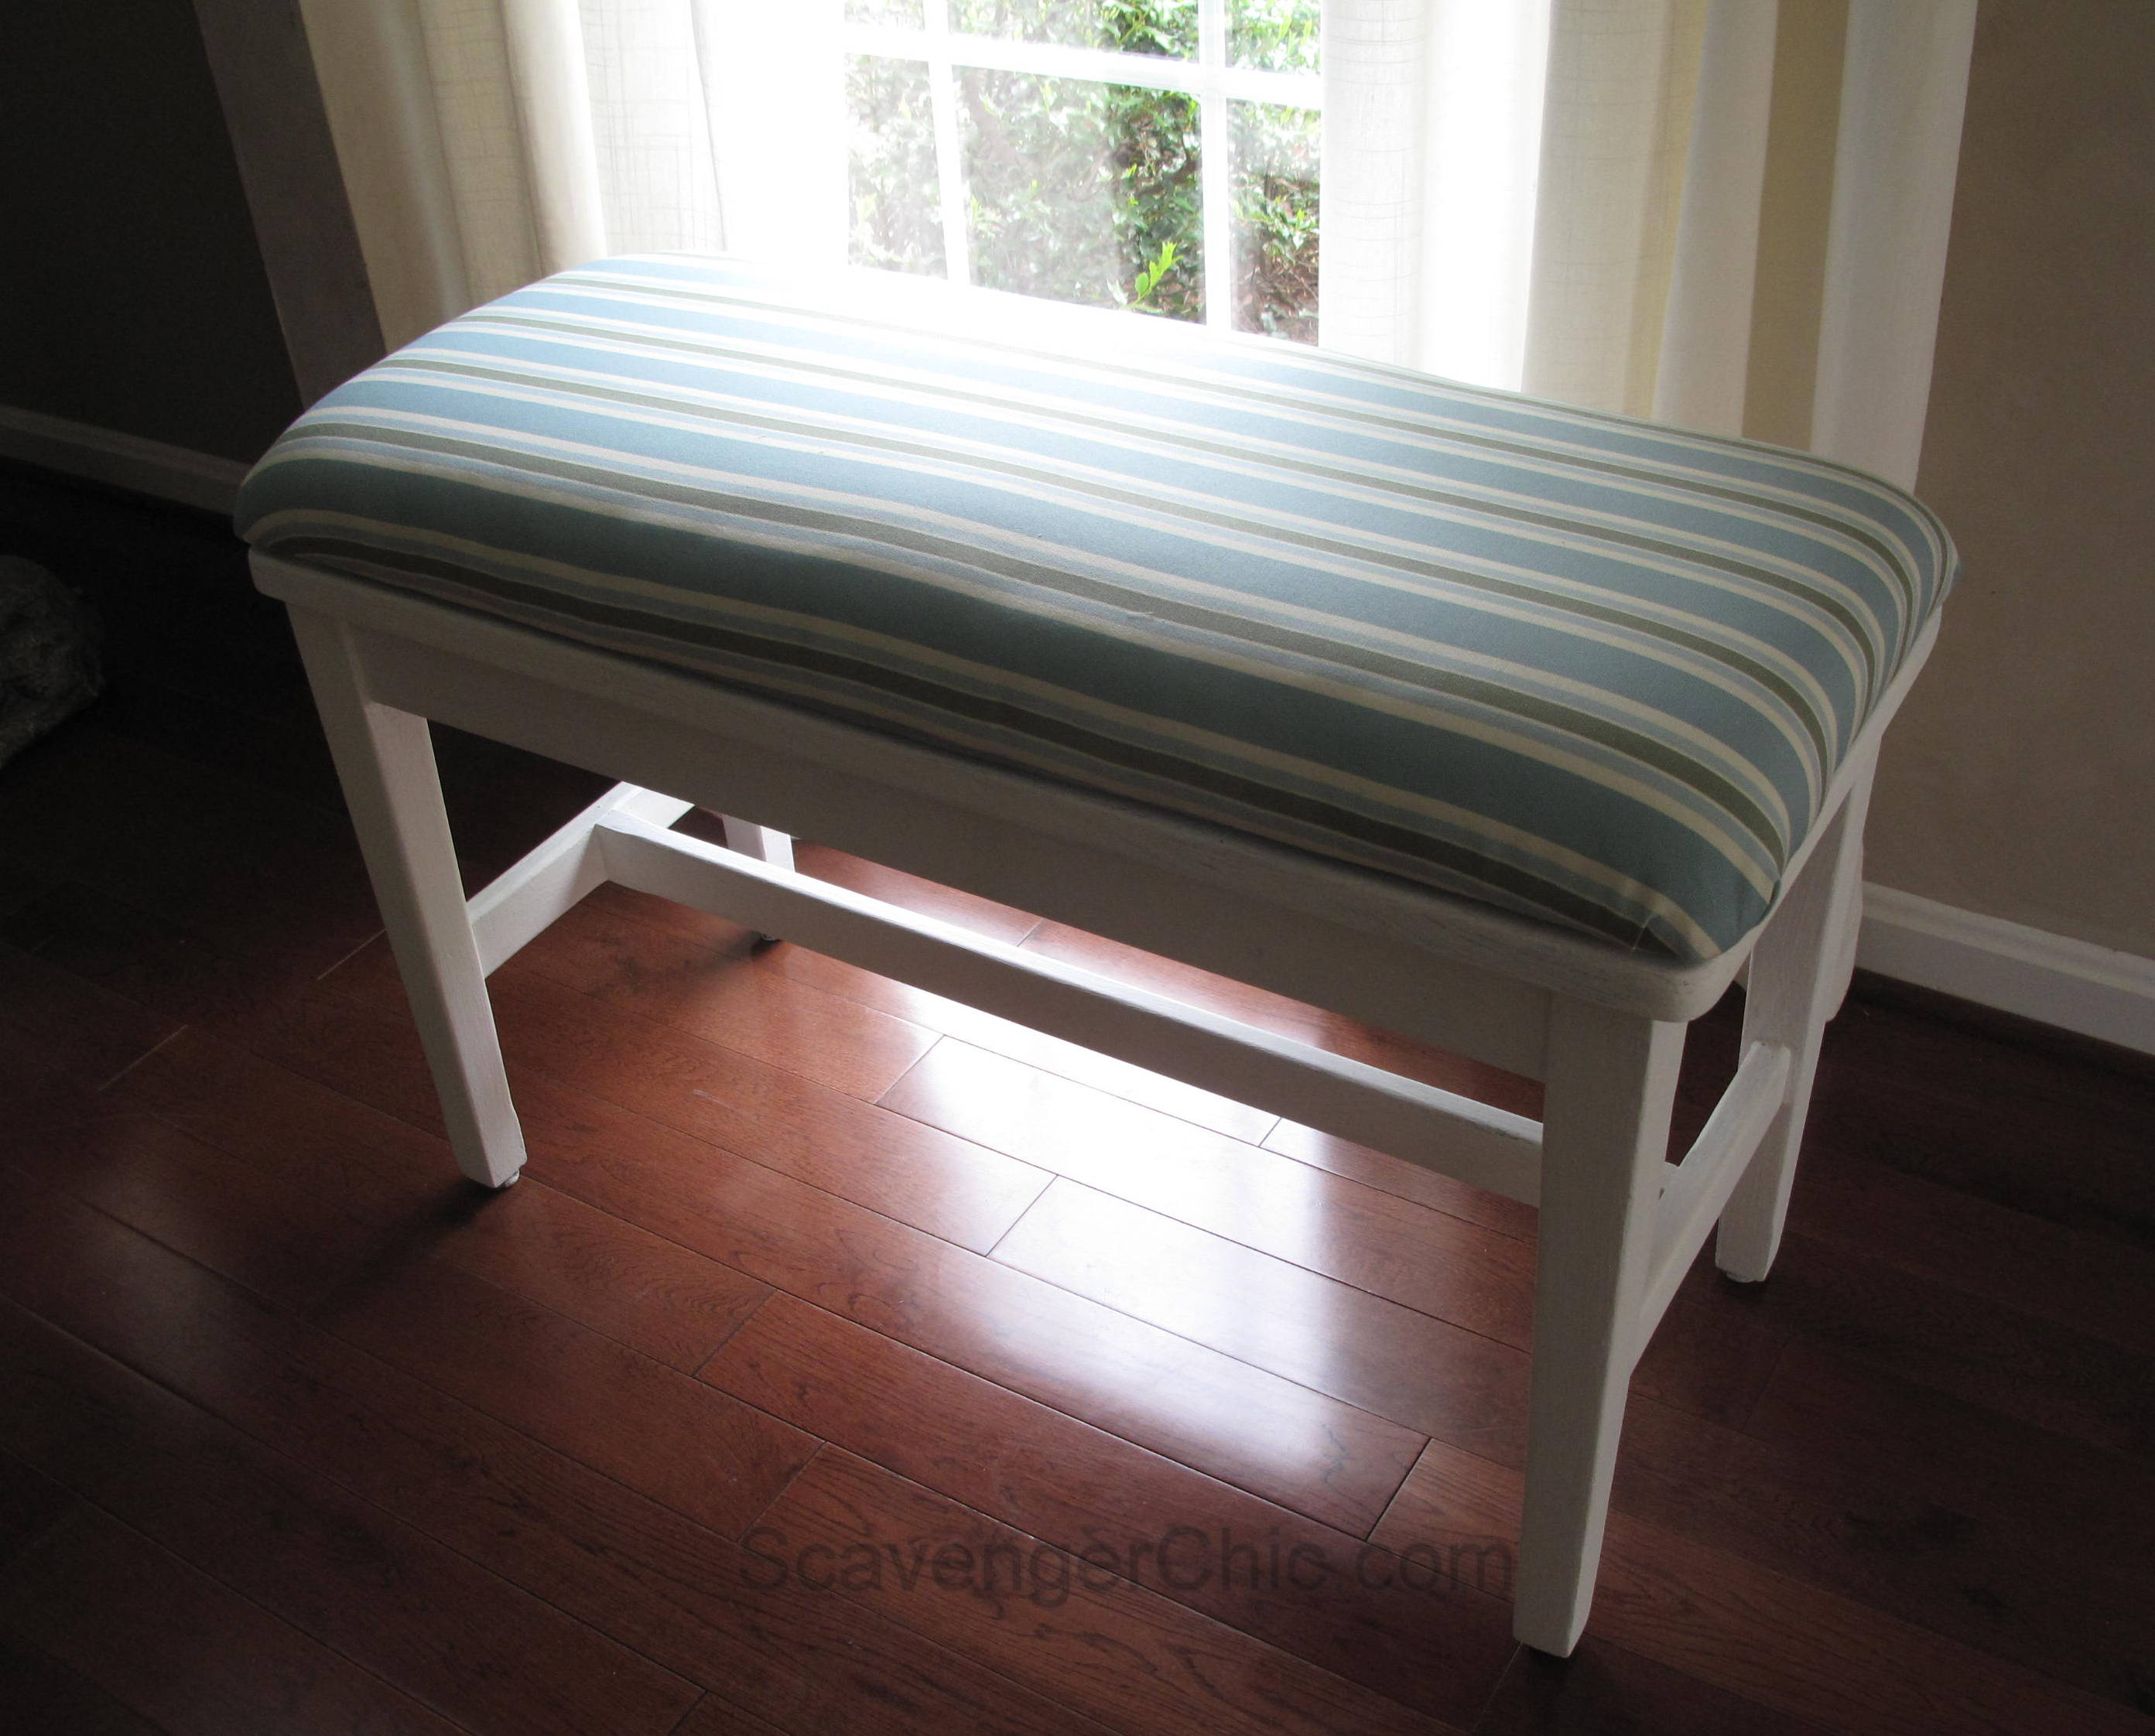 Easy No Sew Padded Seat Cover - Scavenger Chic